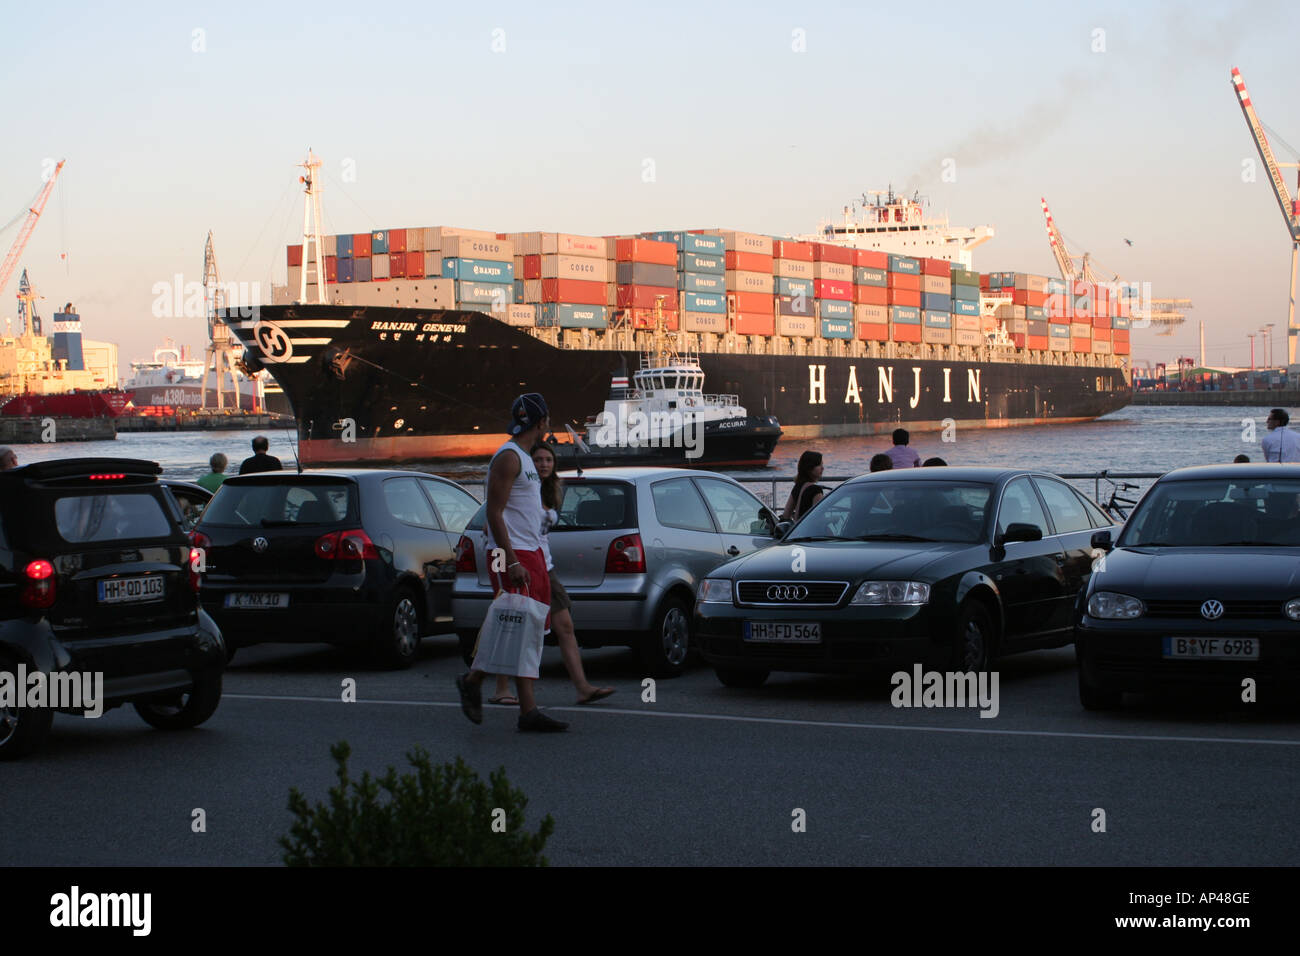 Big Container ship in Hamburg - Stock Image